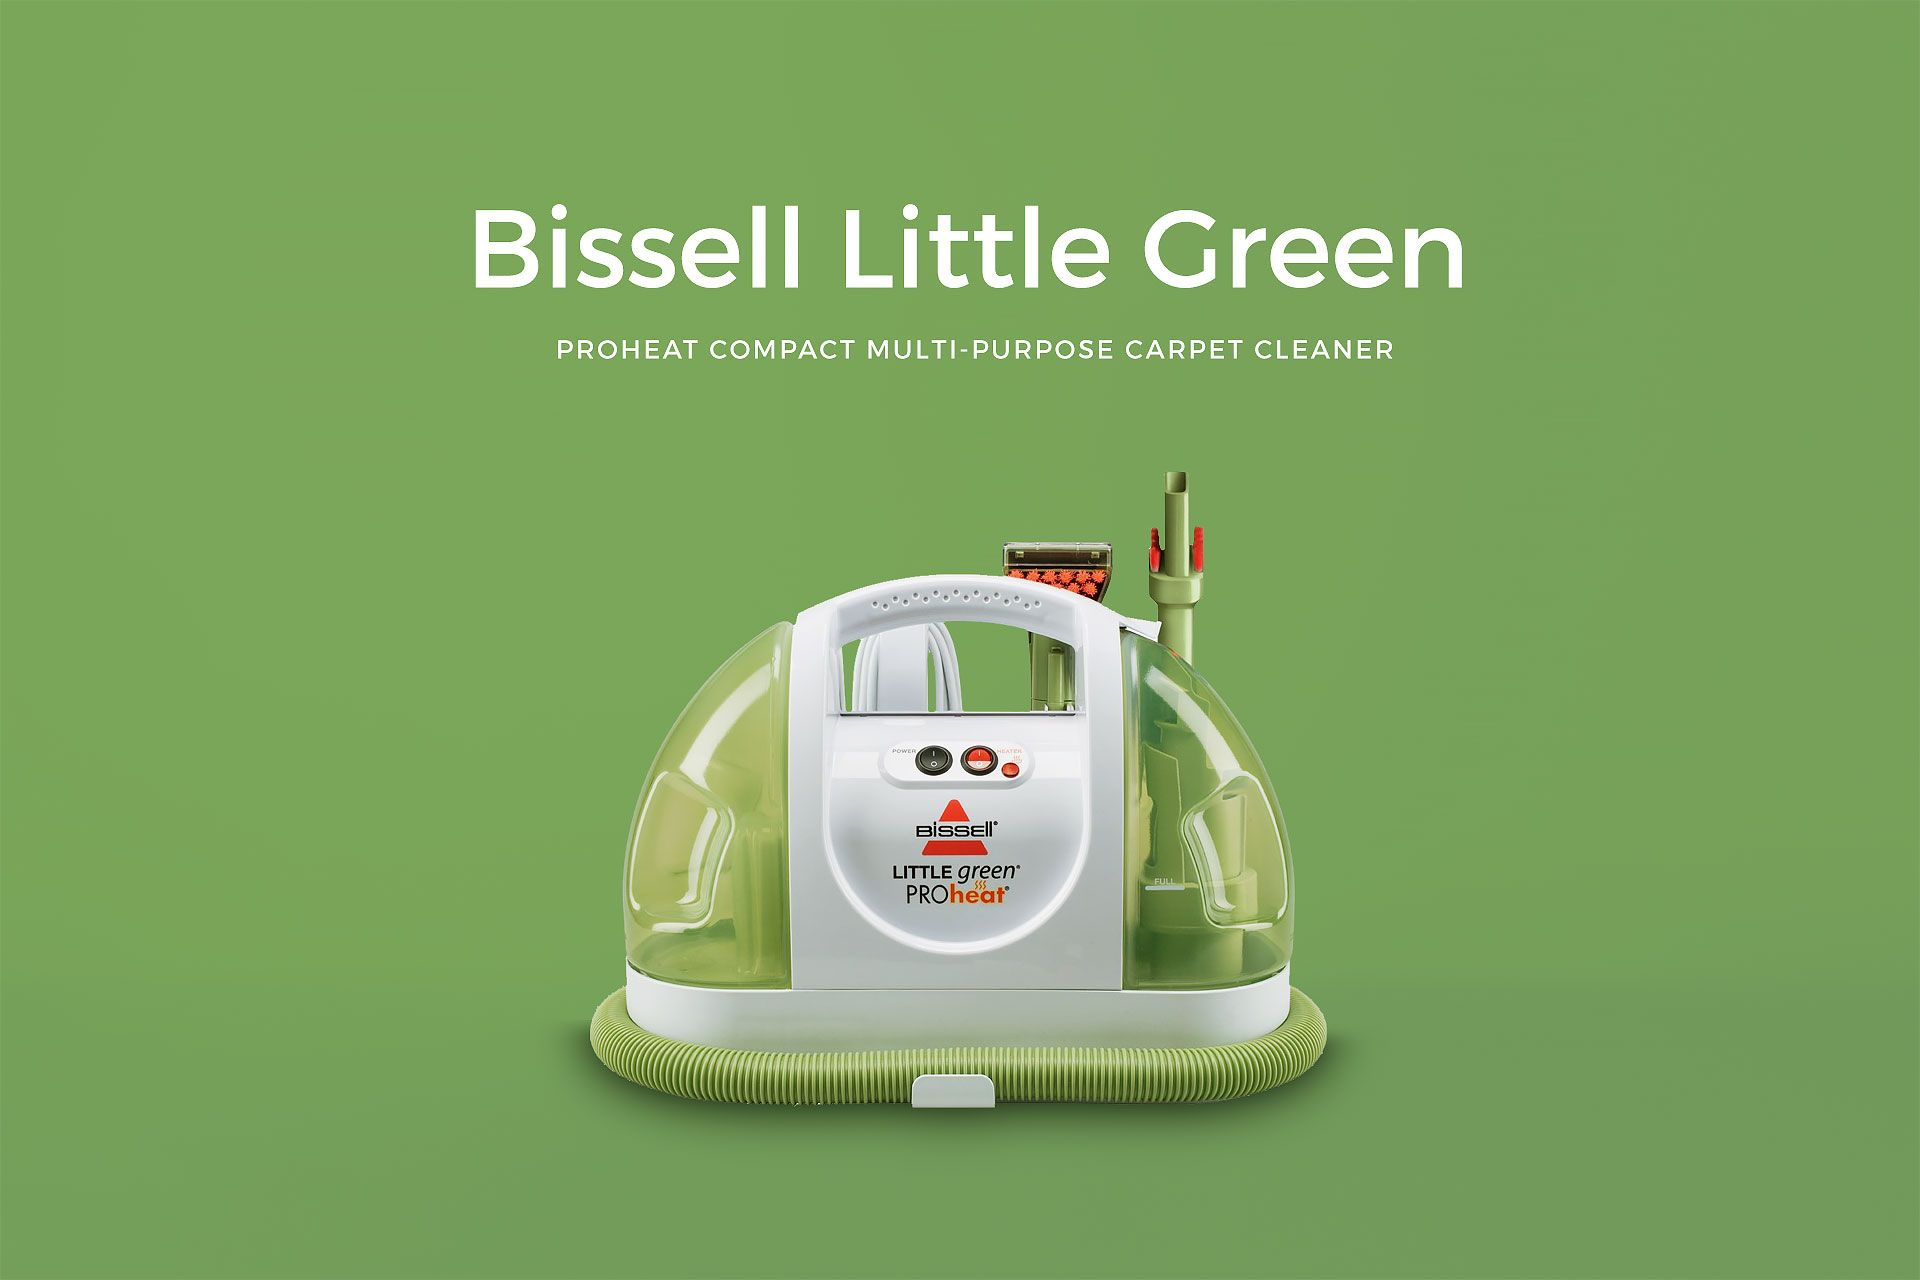 Tested Full Review Of The Portable Bissell Little Green Proheat Compact Carpet Cleaner Right Here Https Www C Carpet Care Carpet Cleaners Commercial Carpet